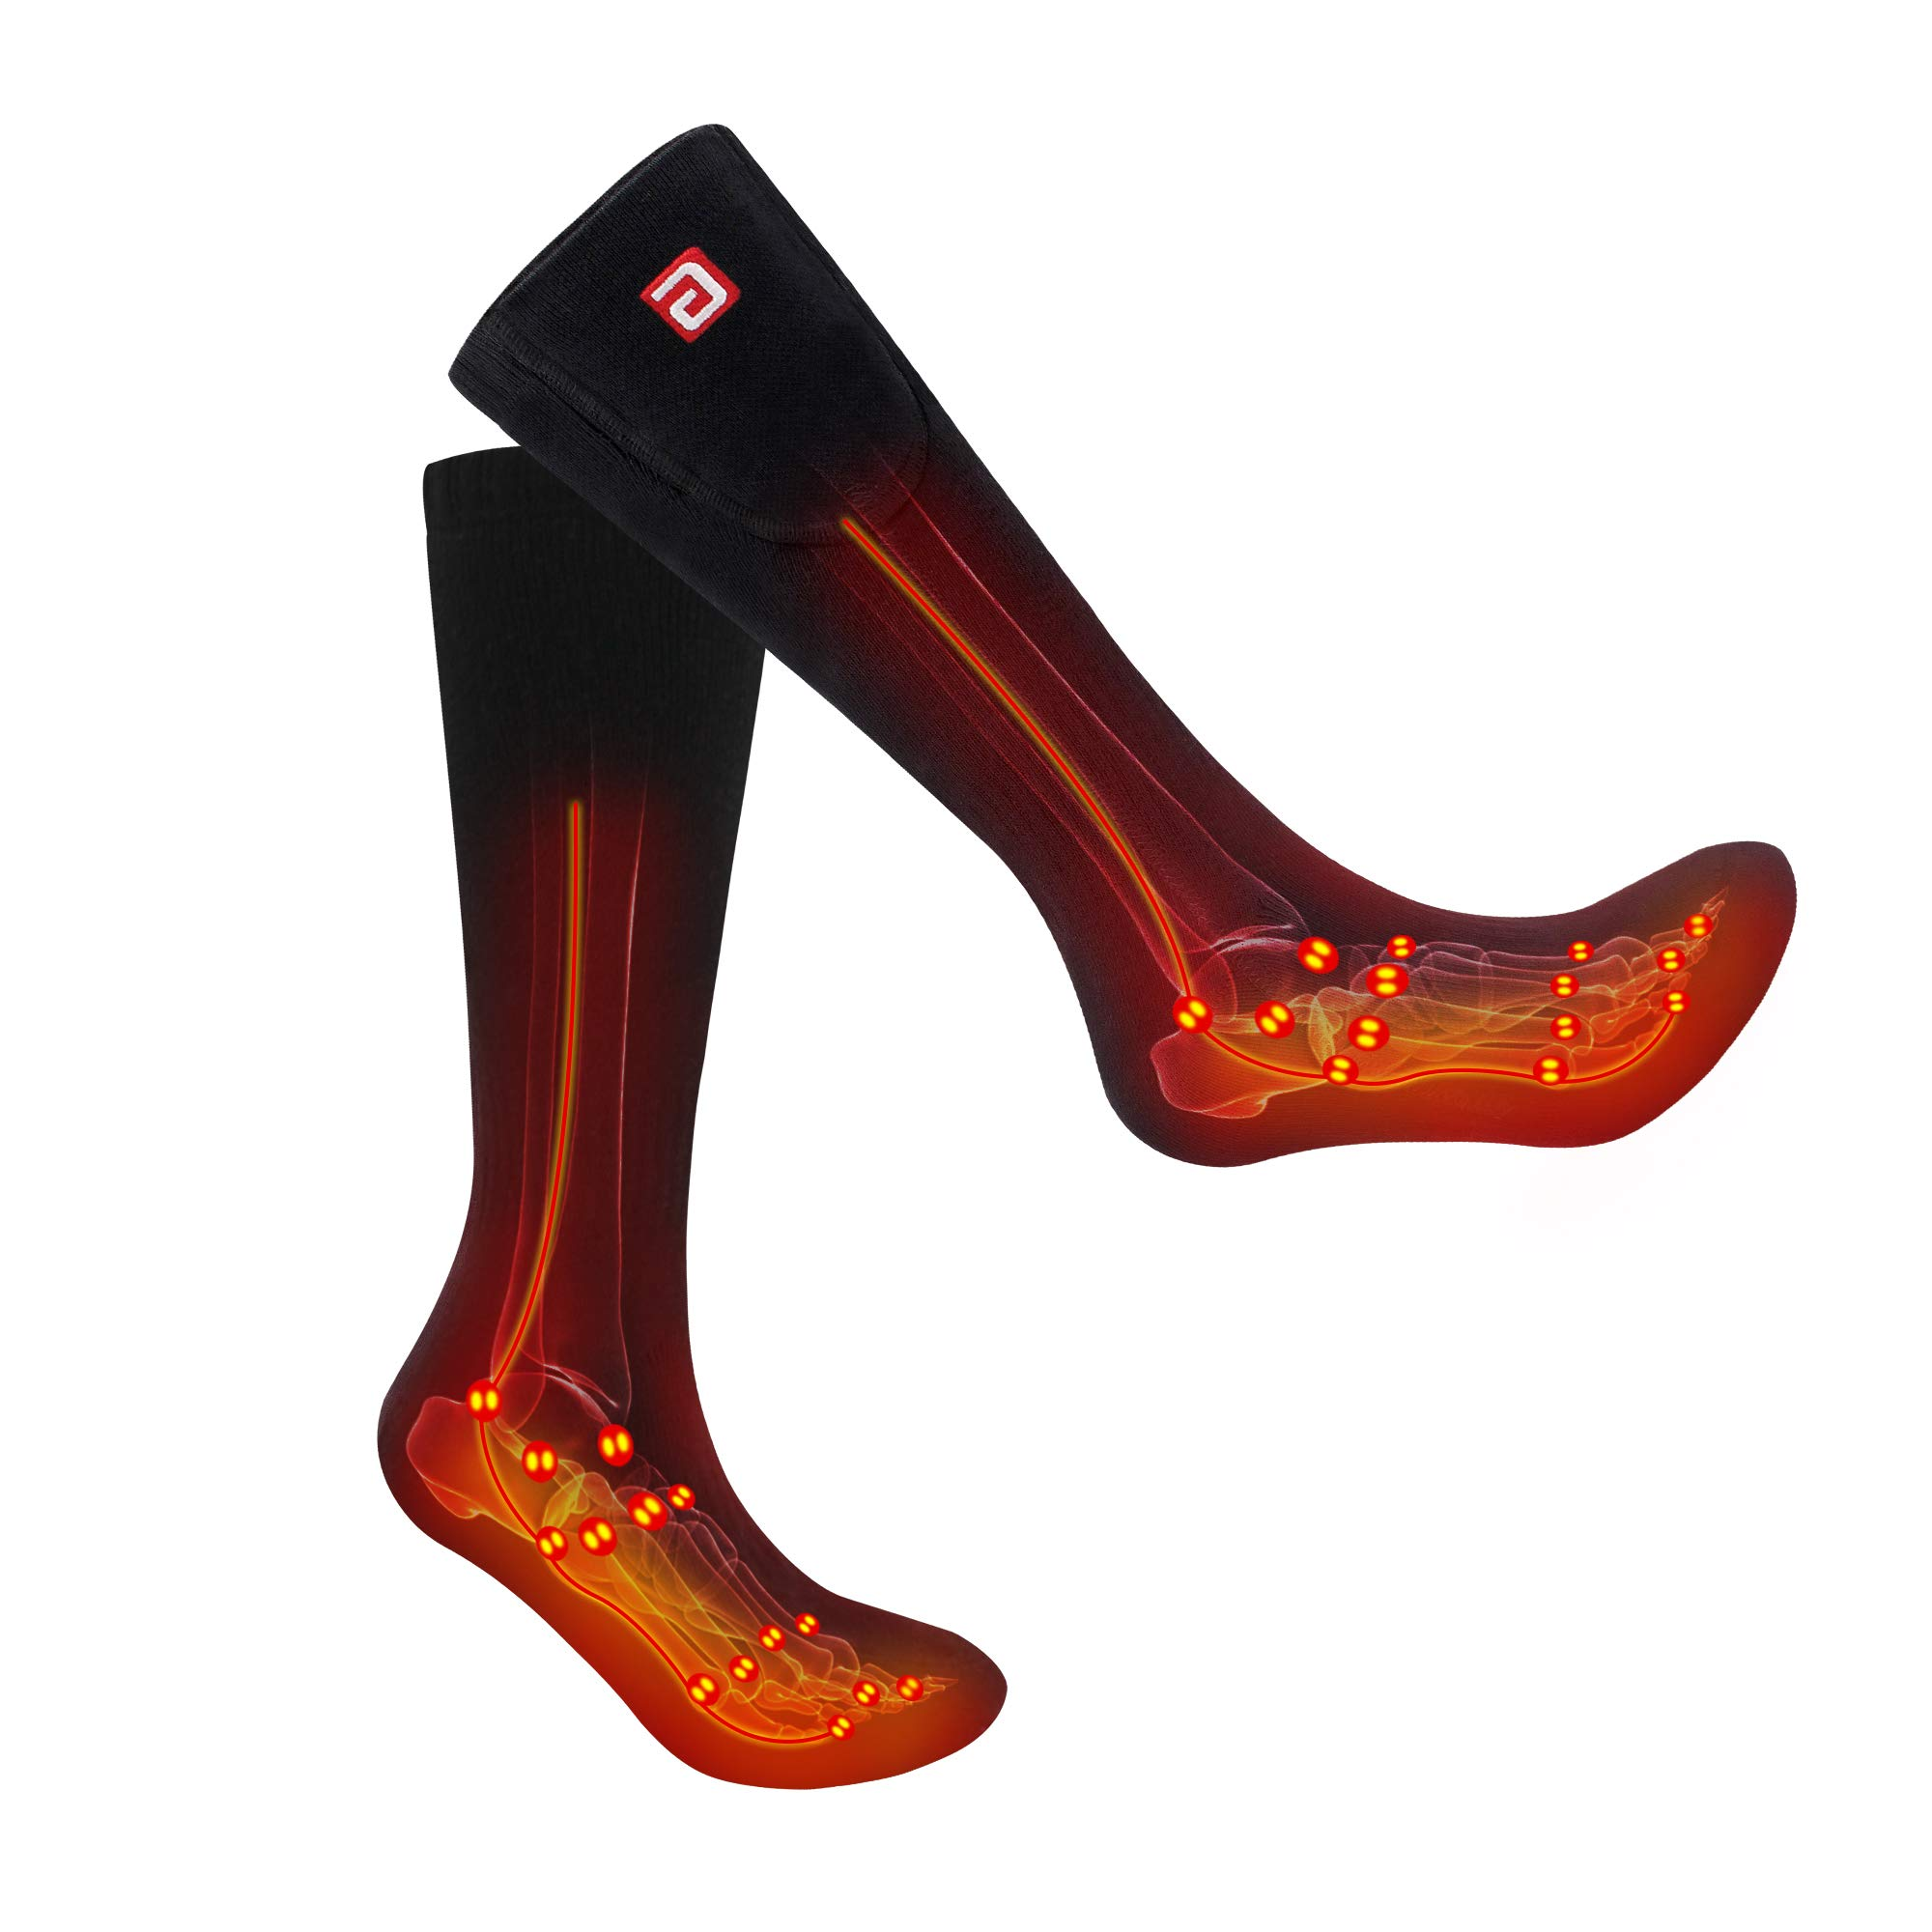 Battery Heated Socks Stockings Unisex Ski Socks Electric Rechargeable Hiking&Camping Equipment, Battery Powered Thermal Socks Kit Warm Winter Crew for Cold Feet,Thermo Thick Cotton Hosiery Heated Sox by Daintymuse